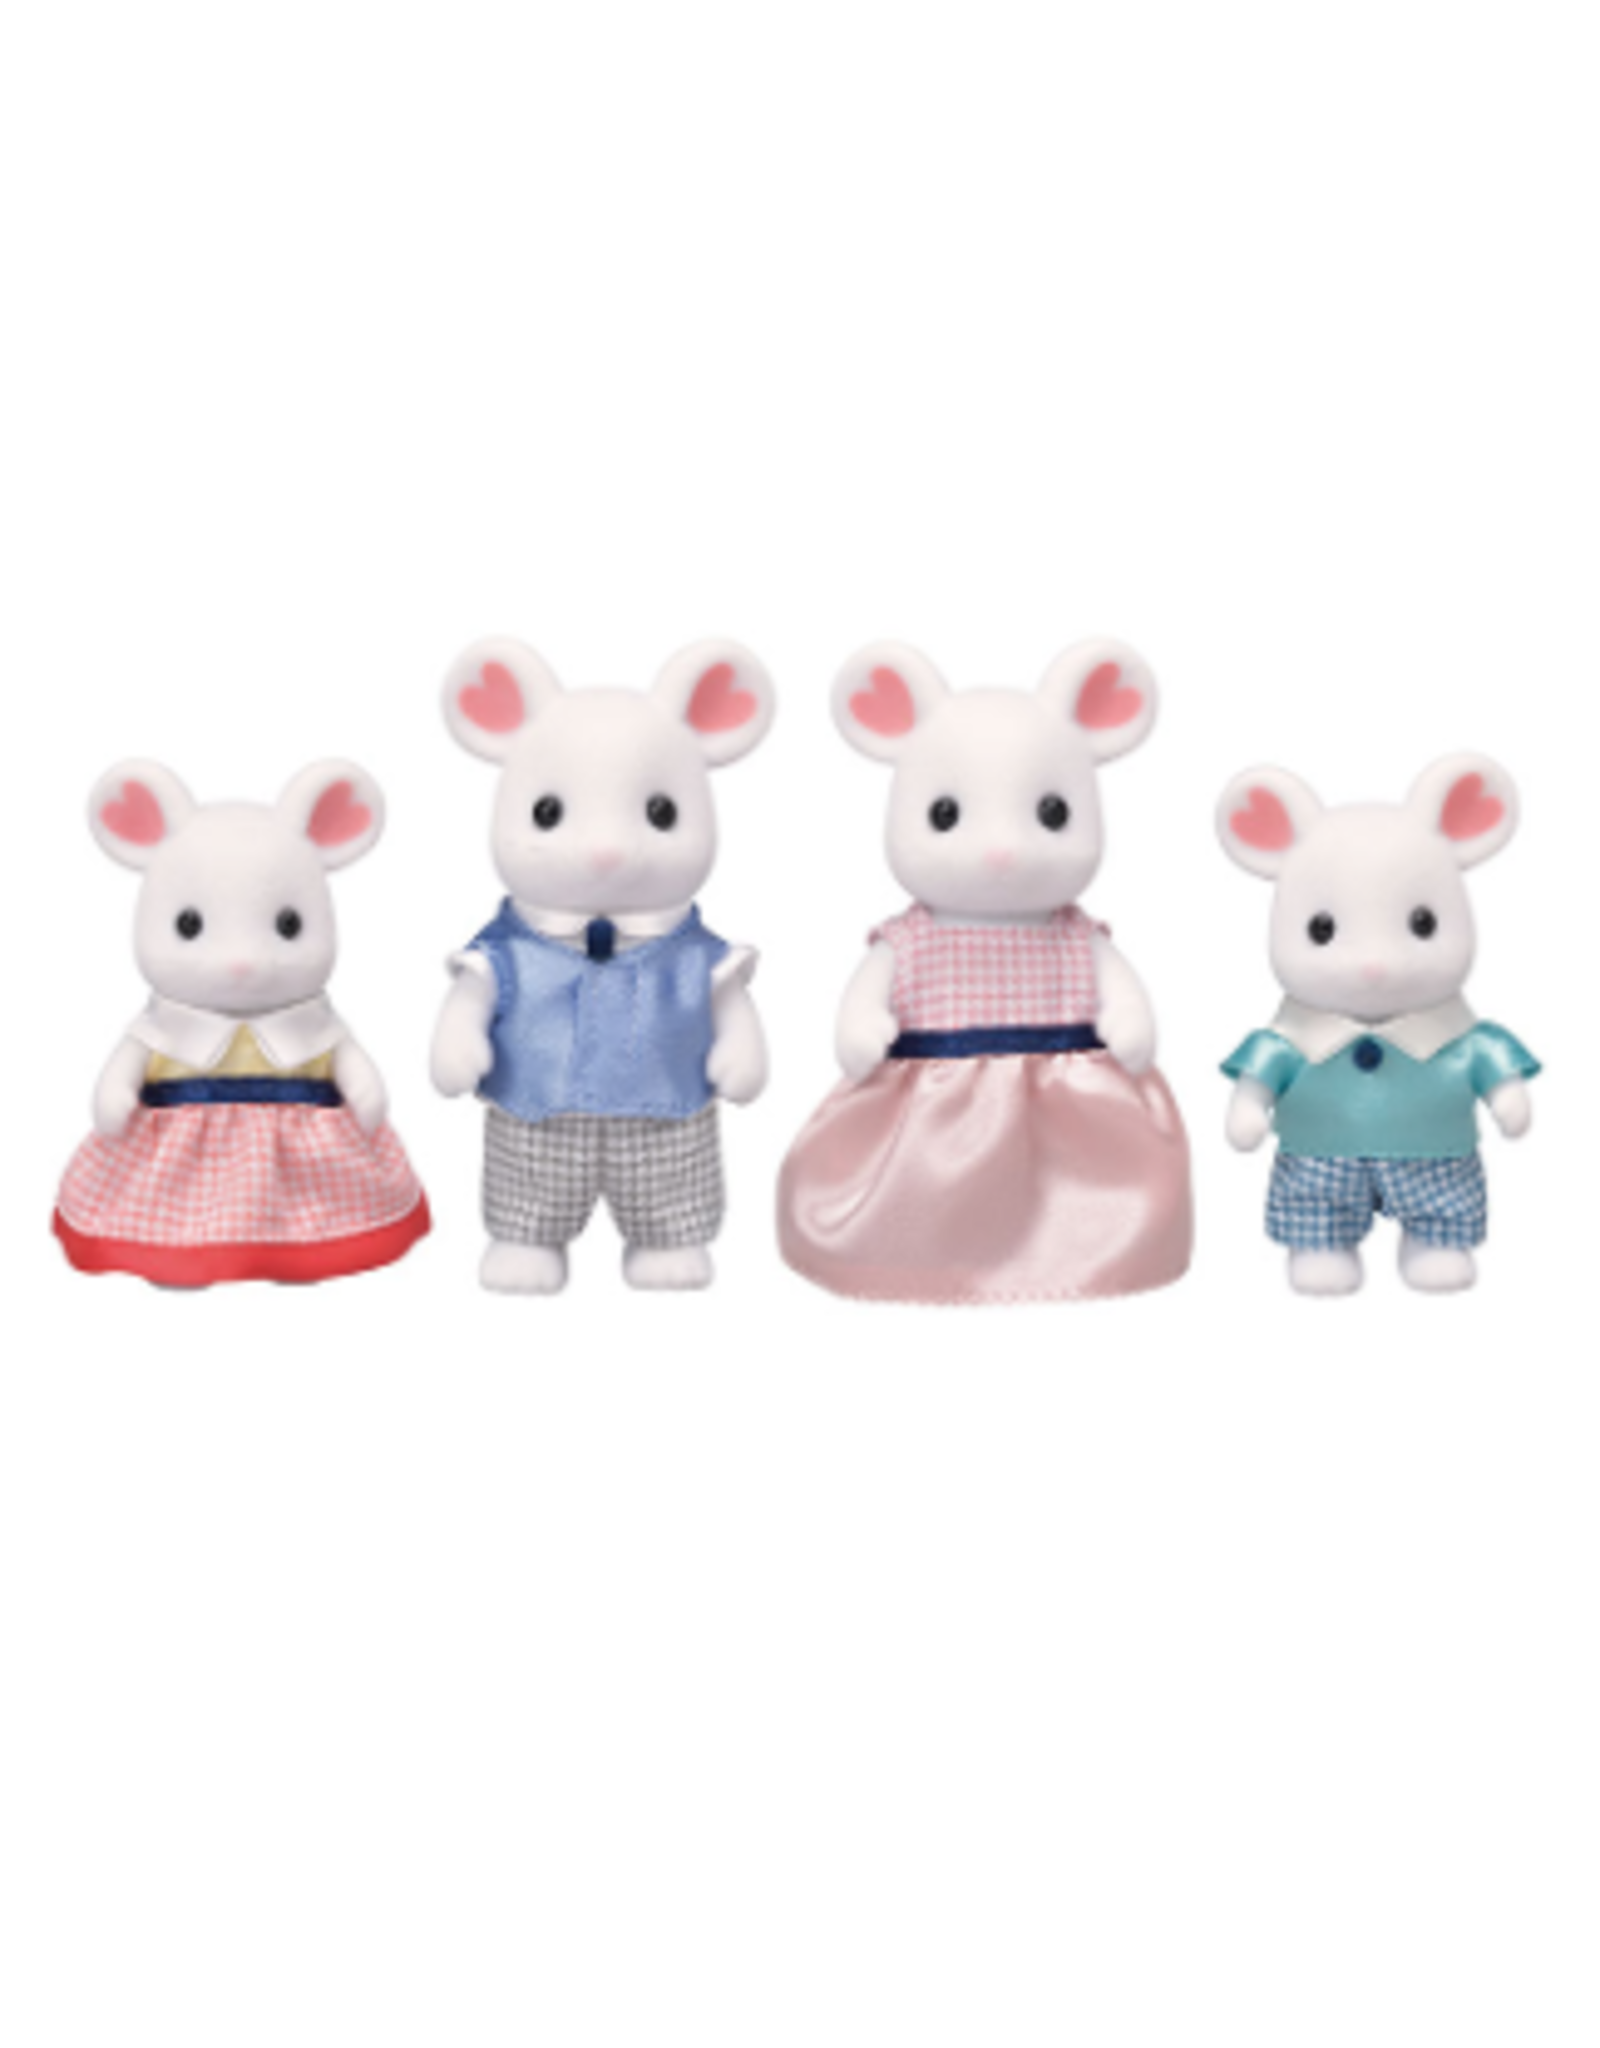 Calico Critters Calico Critters Marshmallow Mouse Family